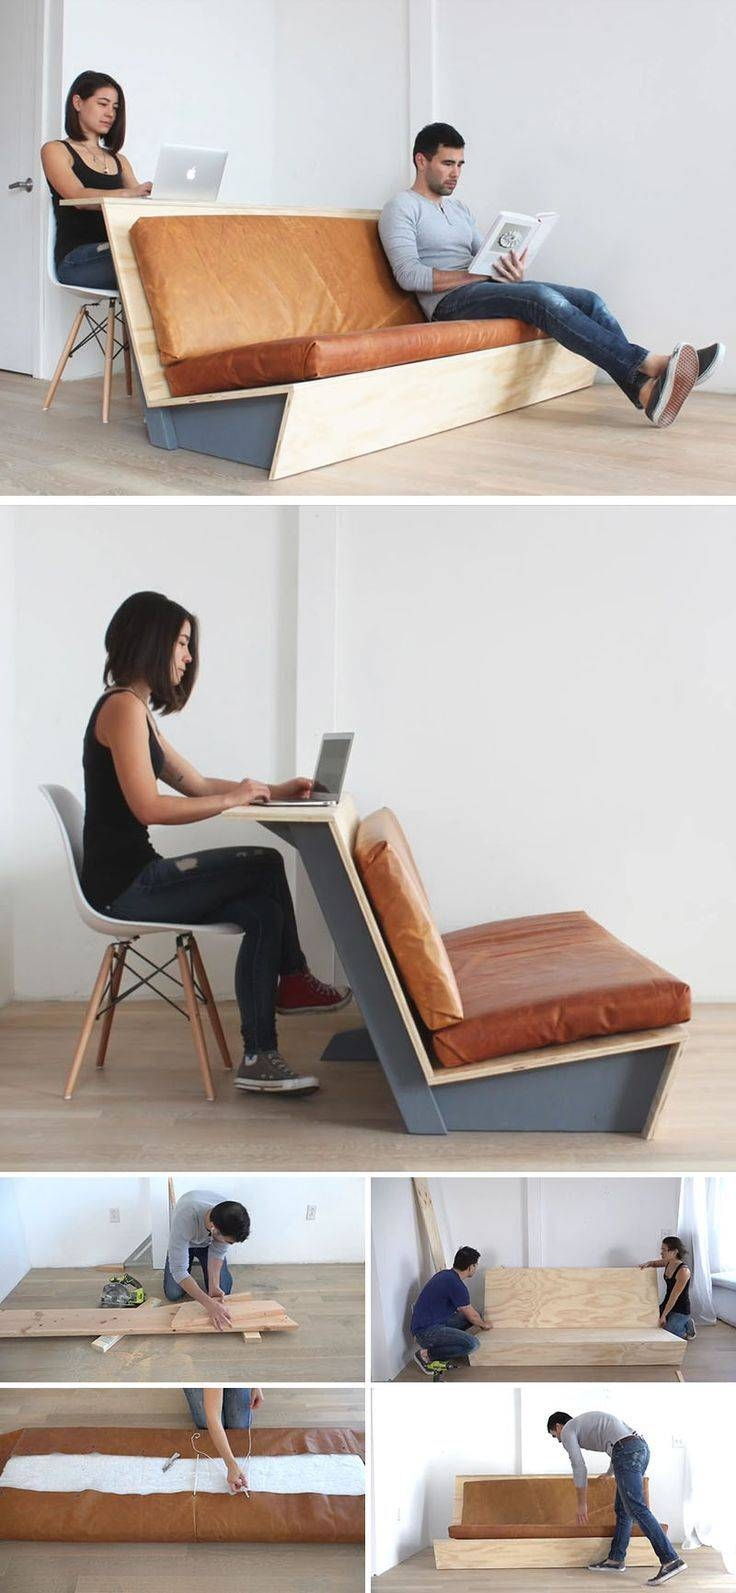 Top 25+ Best Build A Couch Ideas On Pinterest | Outdoor Furniture in Diy Sofa Frame (Image 27 of 30)